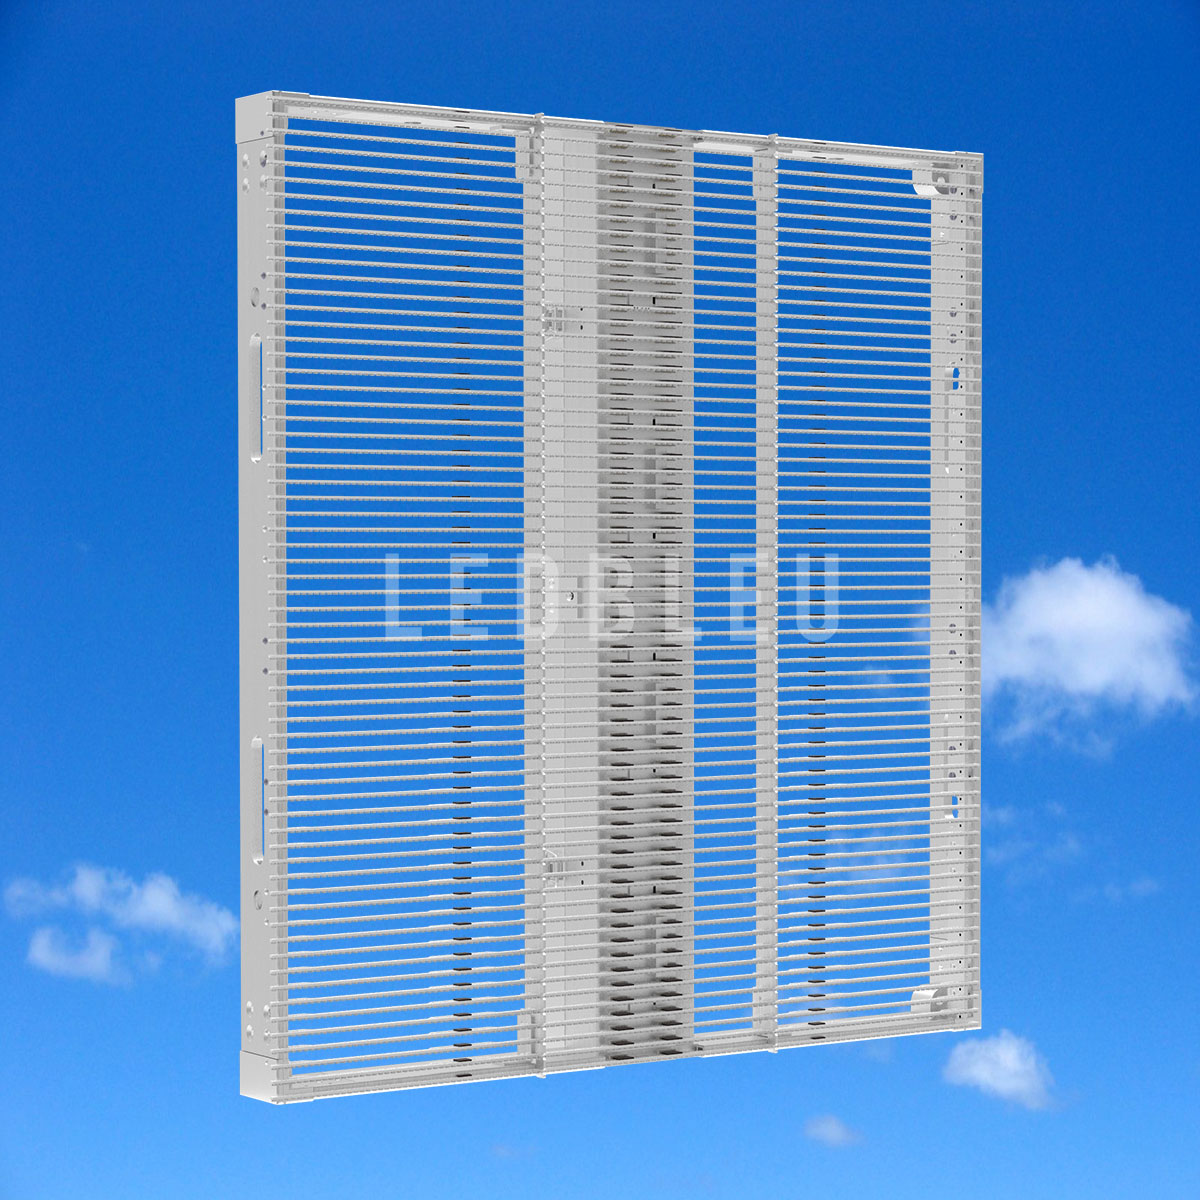 Dalle écran led semi transparent LEDBLEU Vue-avant-50x50